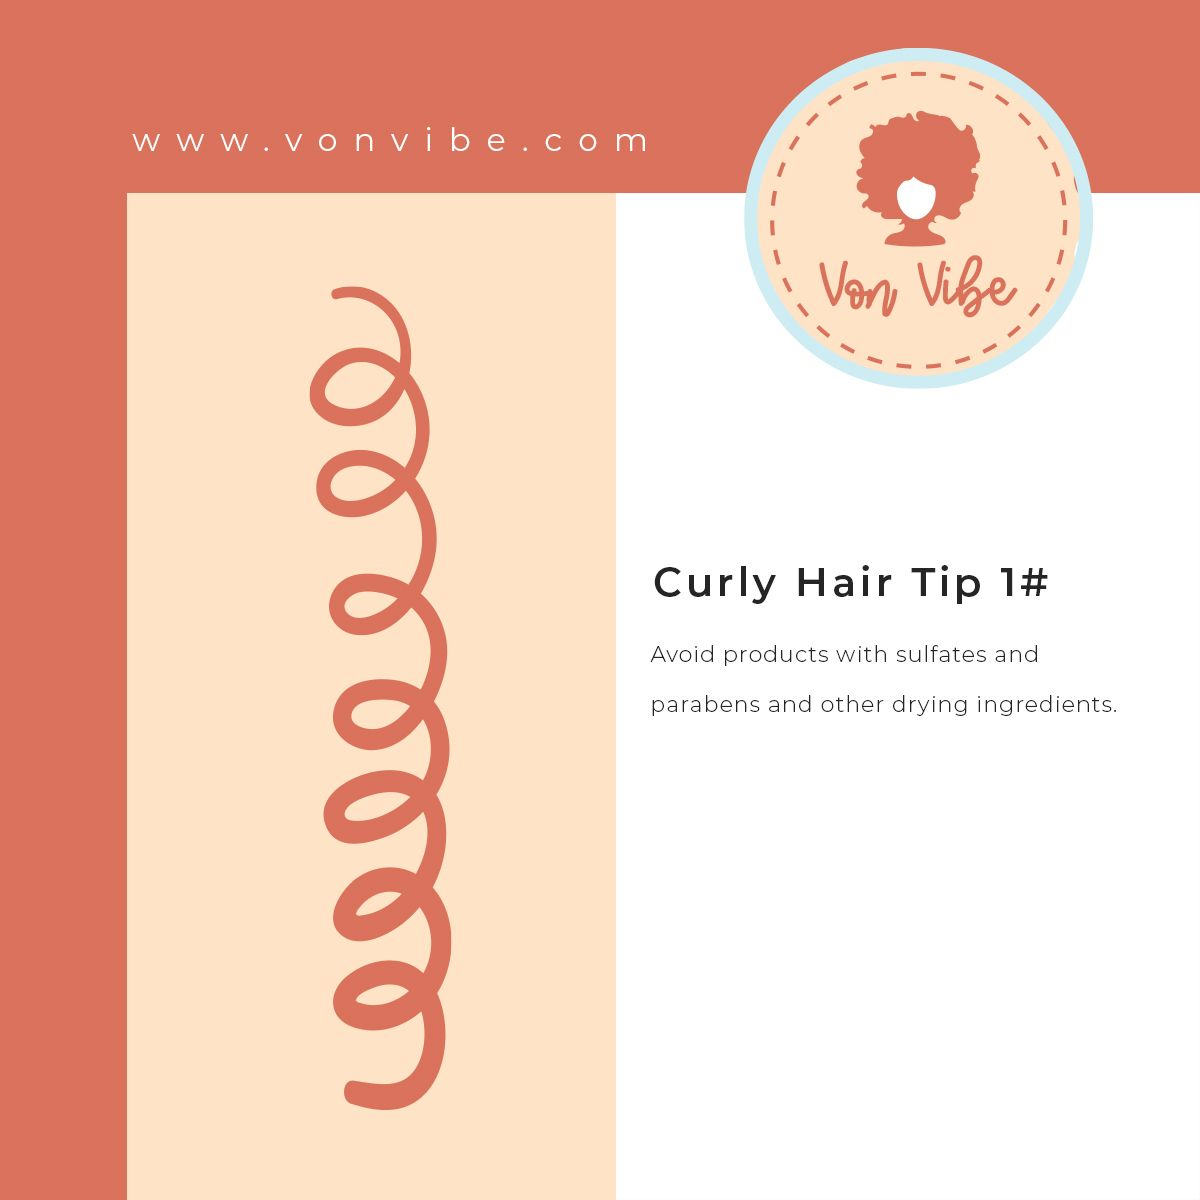 Here's today's tip. Feel free to visit our website to explore our full hair guide.  _ _ #healthyhair  #naturalhairguide #hairtips #NourishTheirConfidence #naturalhairloves #naturalhairgoals #vonvibe #naturalcurlyhair #hairtips #shinyhair #loveyourhair #hairspiration #curlygirls #fro #afro